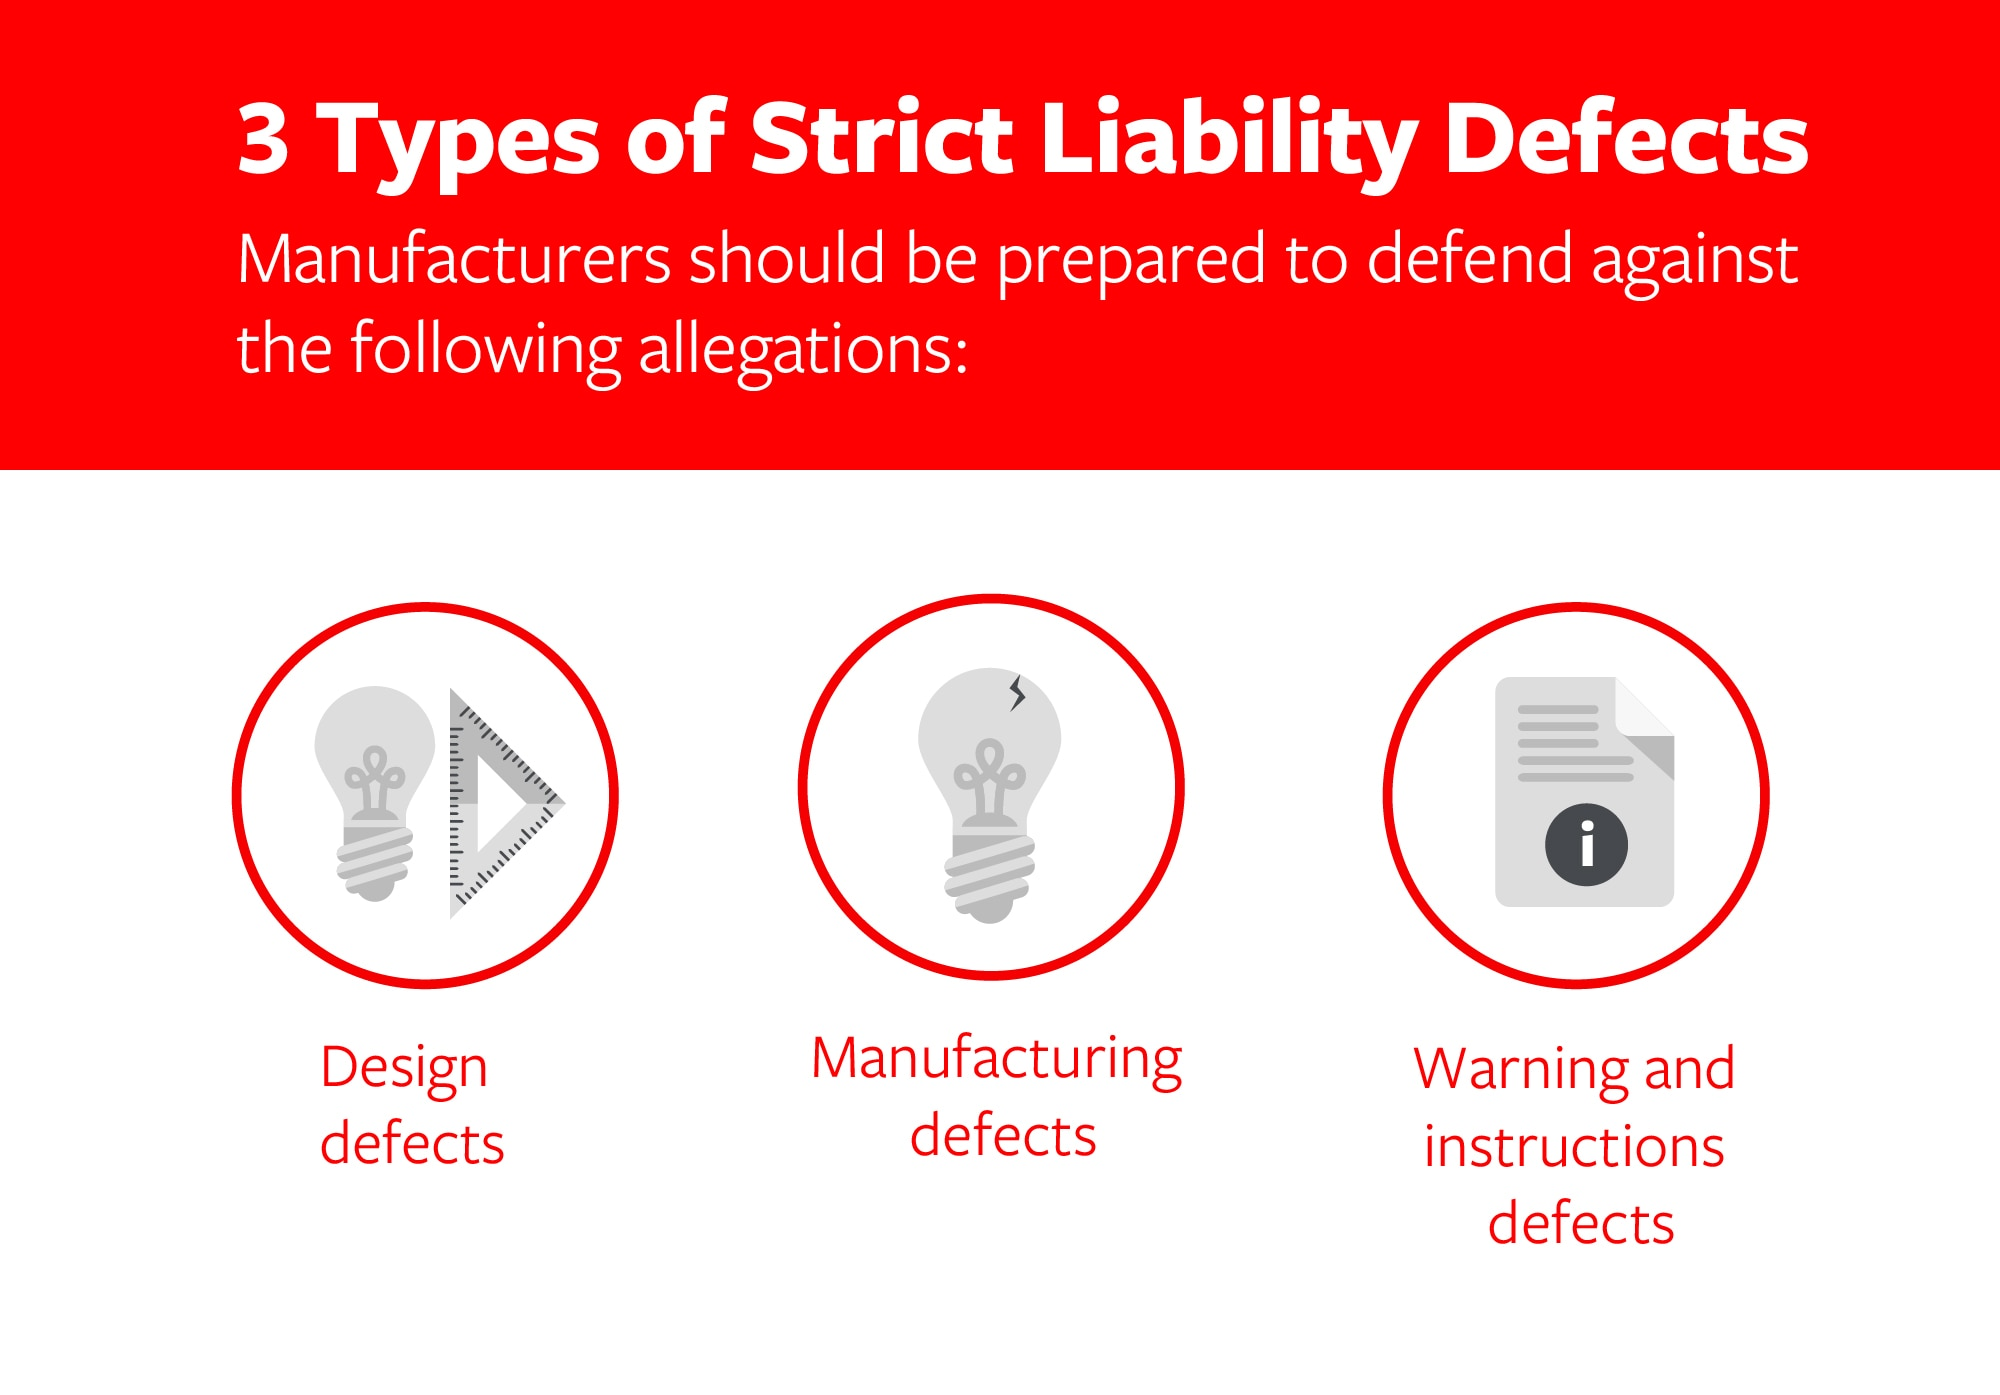 Illustrated list of 3 types of strict liability defects